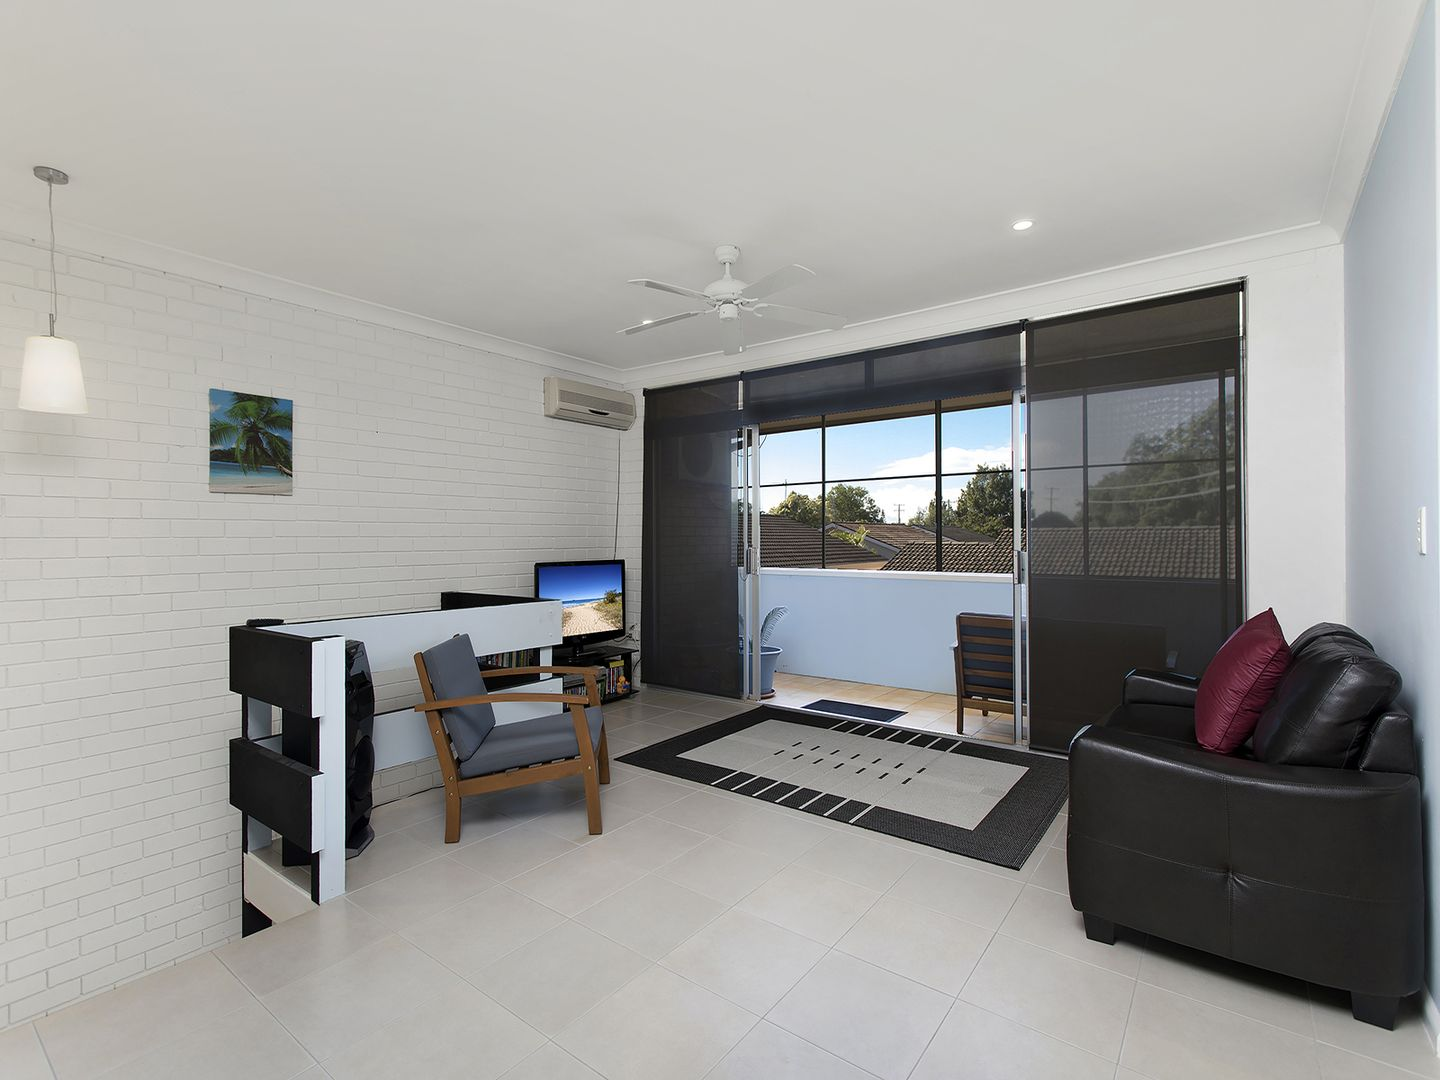 2/98 West Argyll St, Coffs Harbour NSW 2450, Image 1